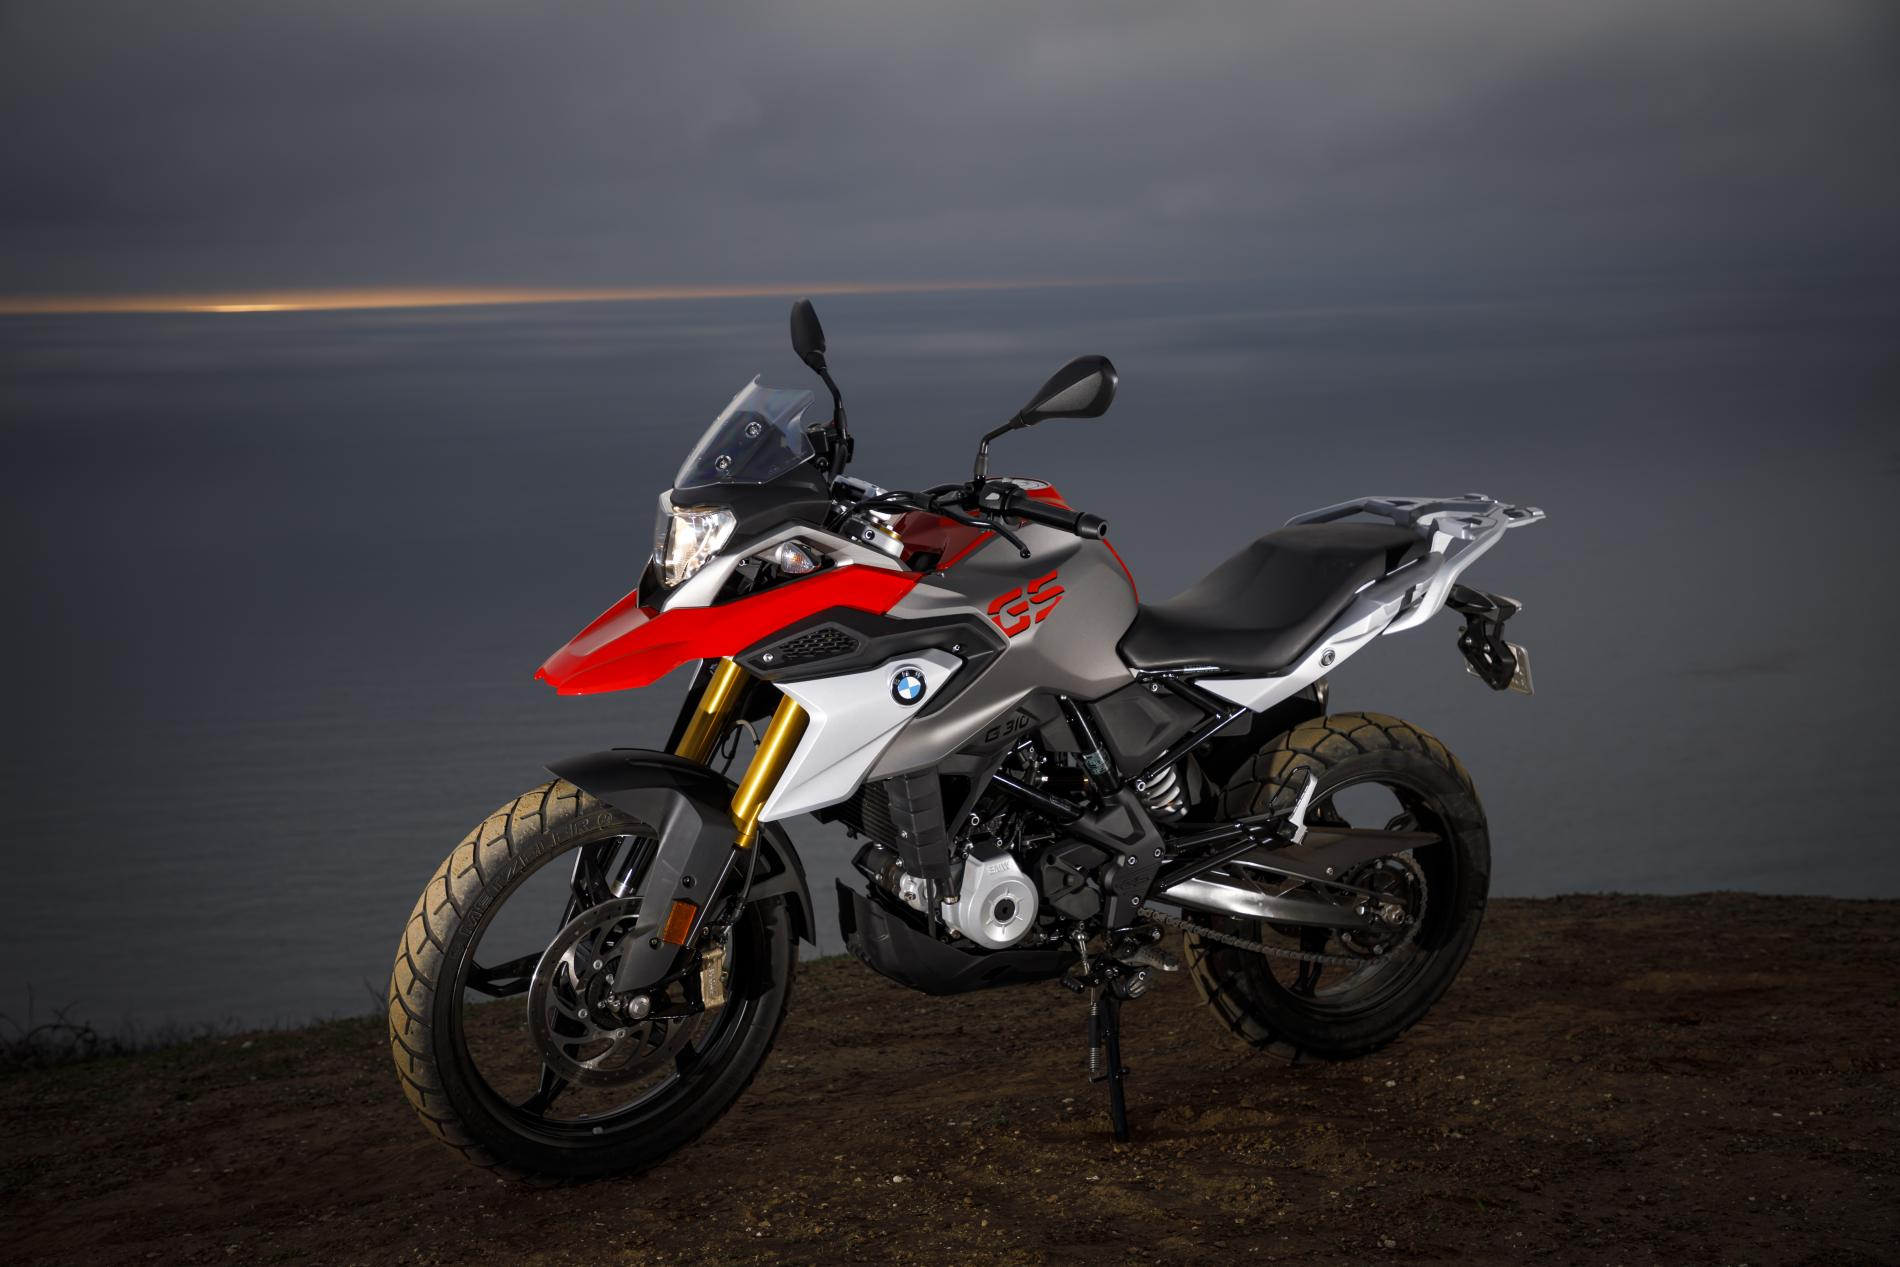 BMW G 310 GS - medium